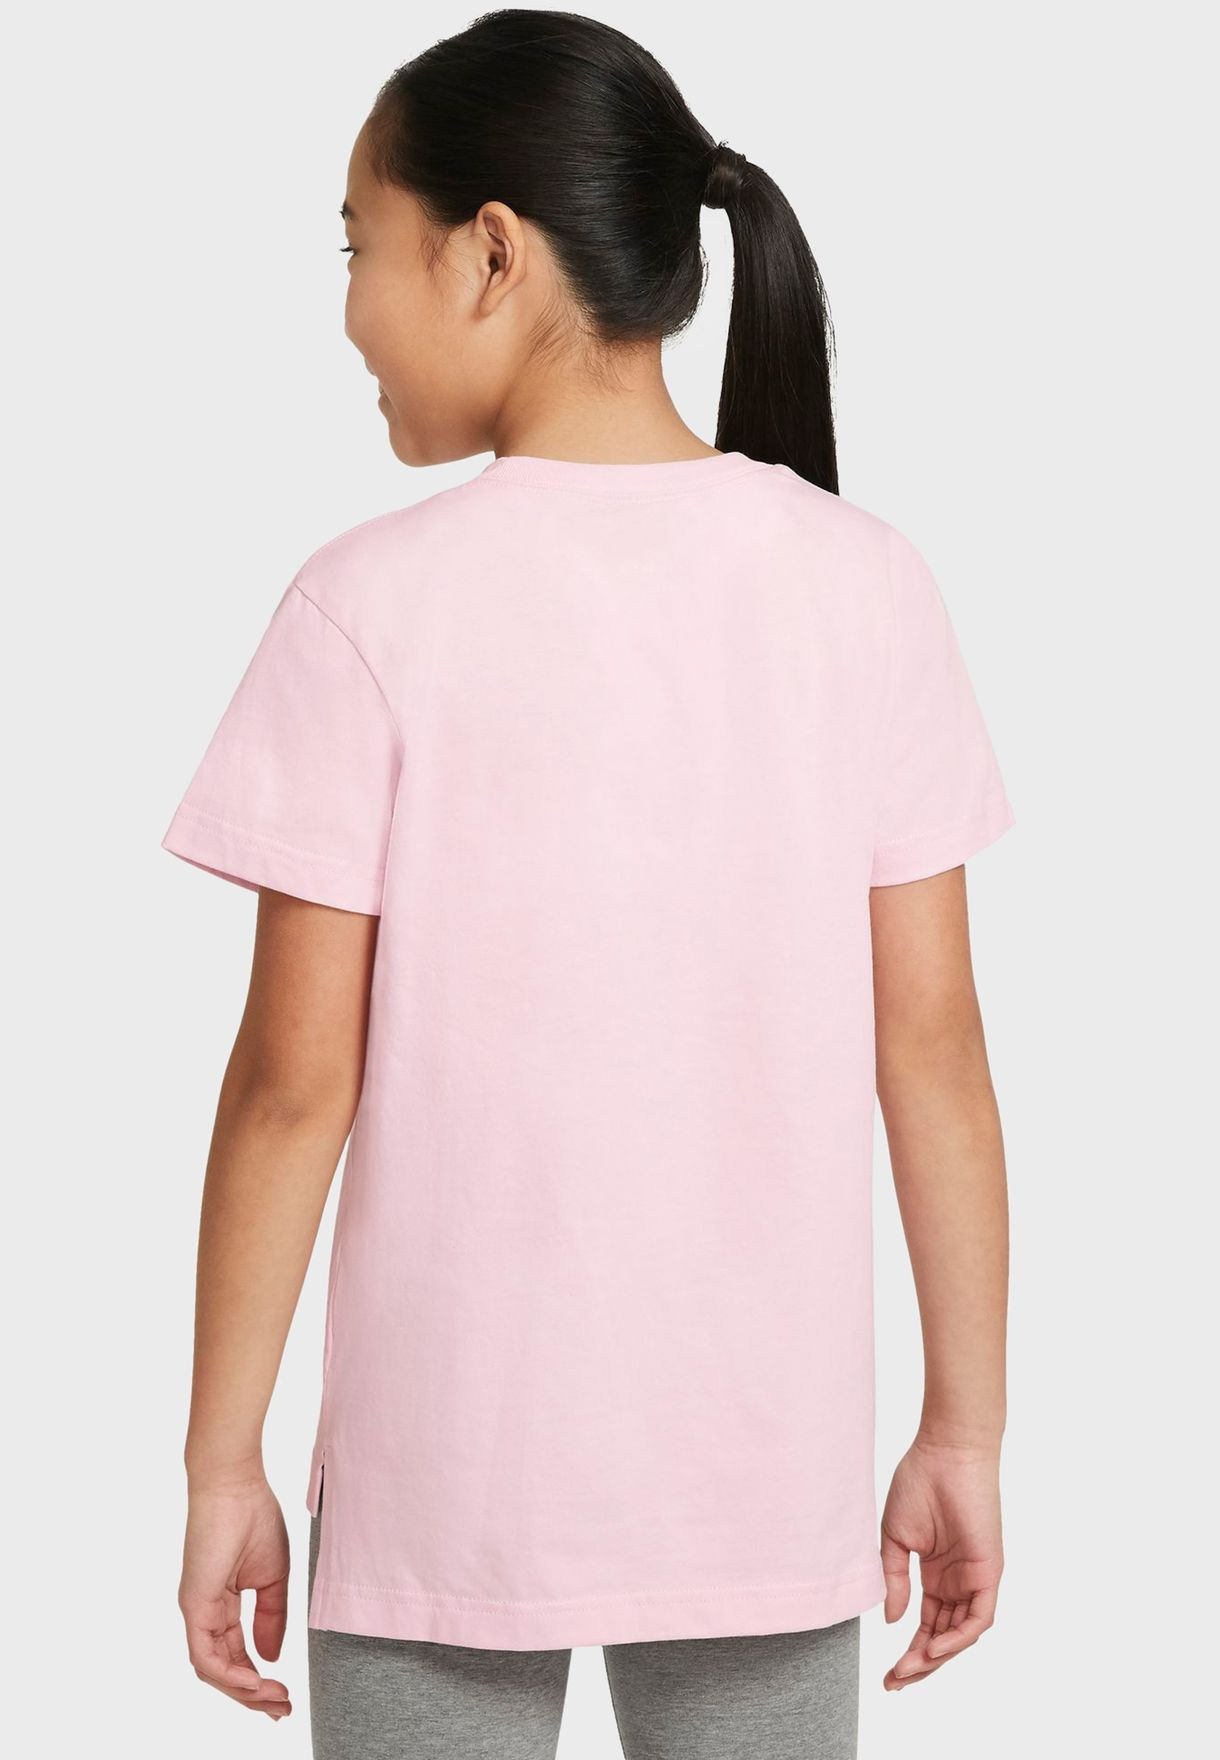 Youth NSW Summer T-Shirt